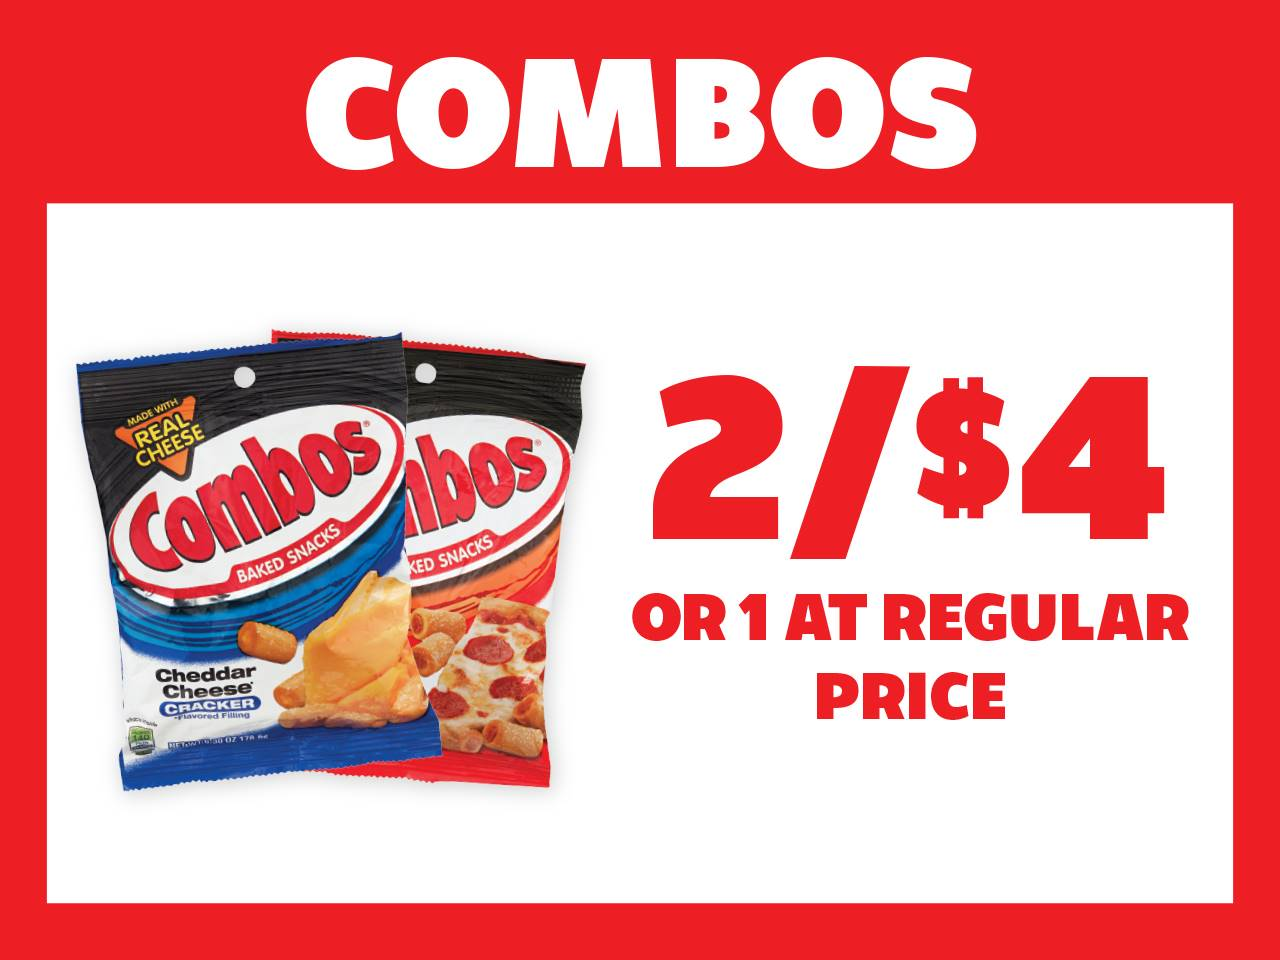 2 Combos for $4 or 1 at Reg Price